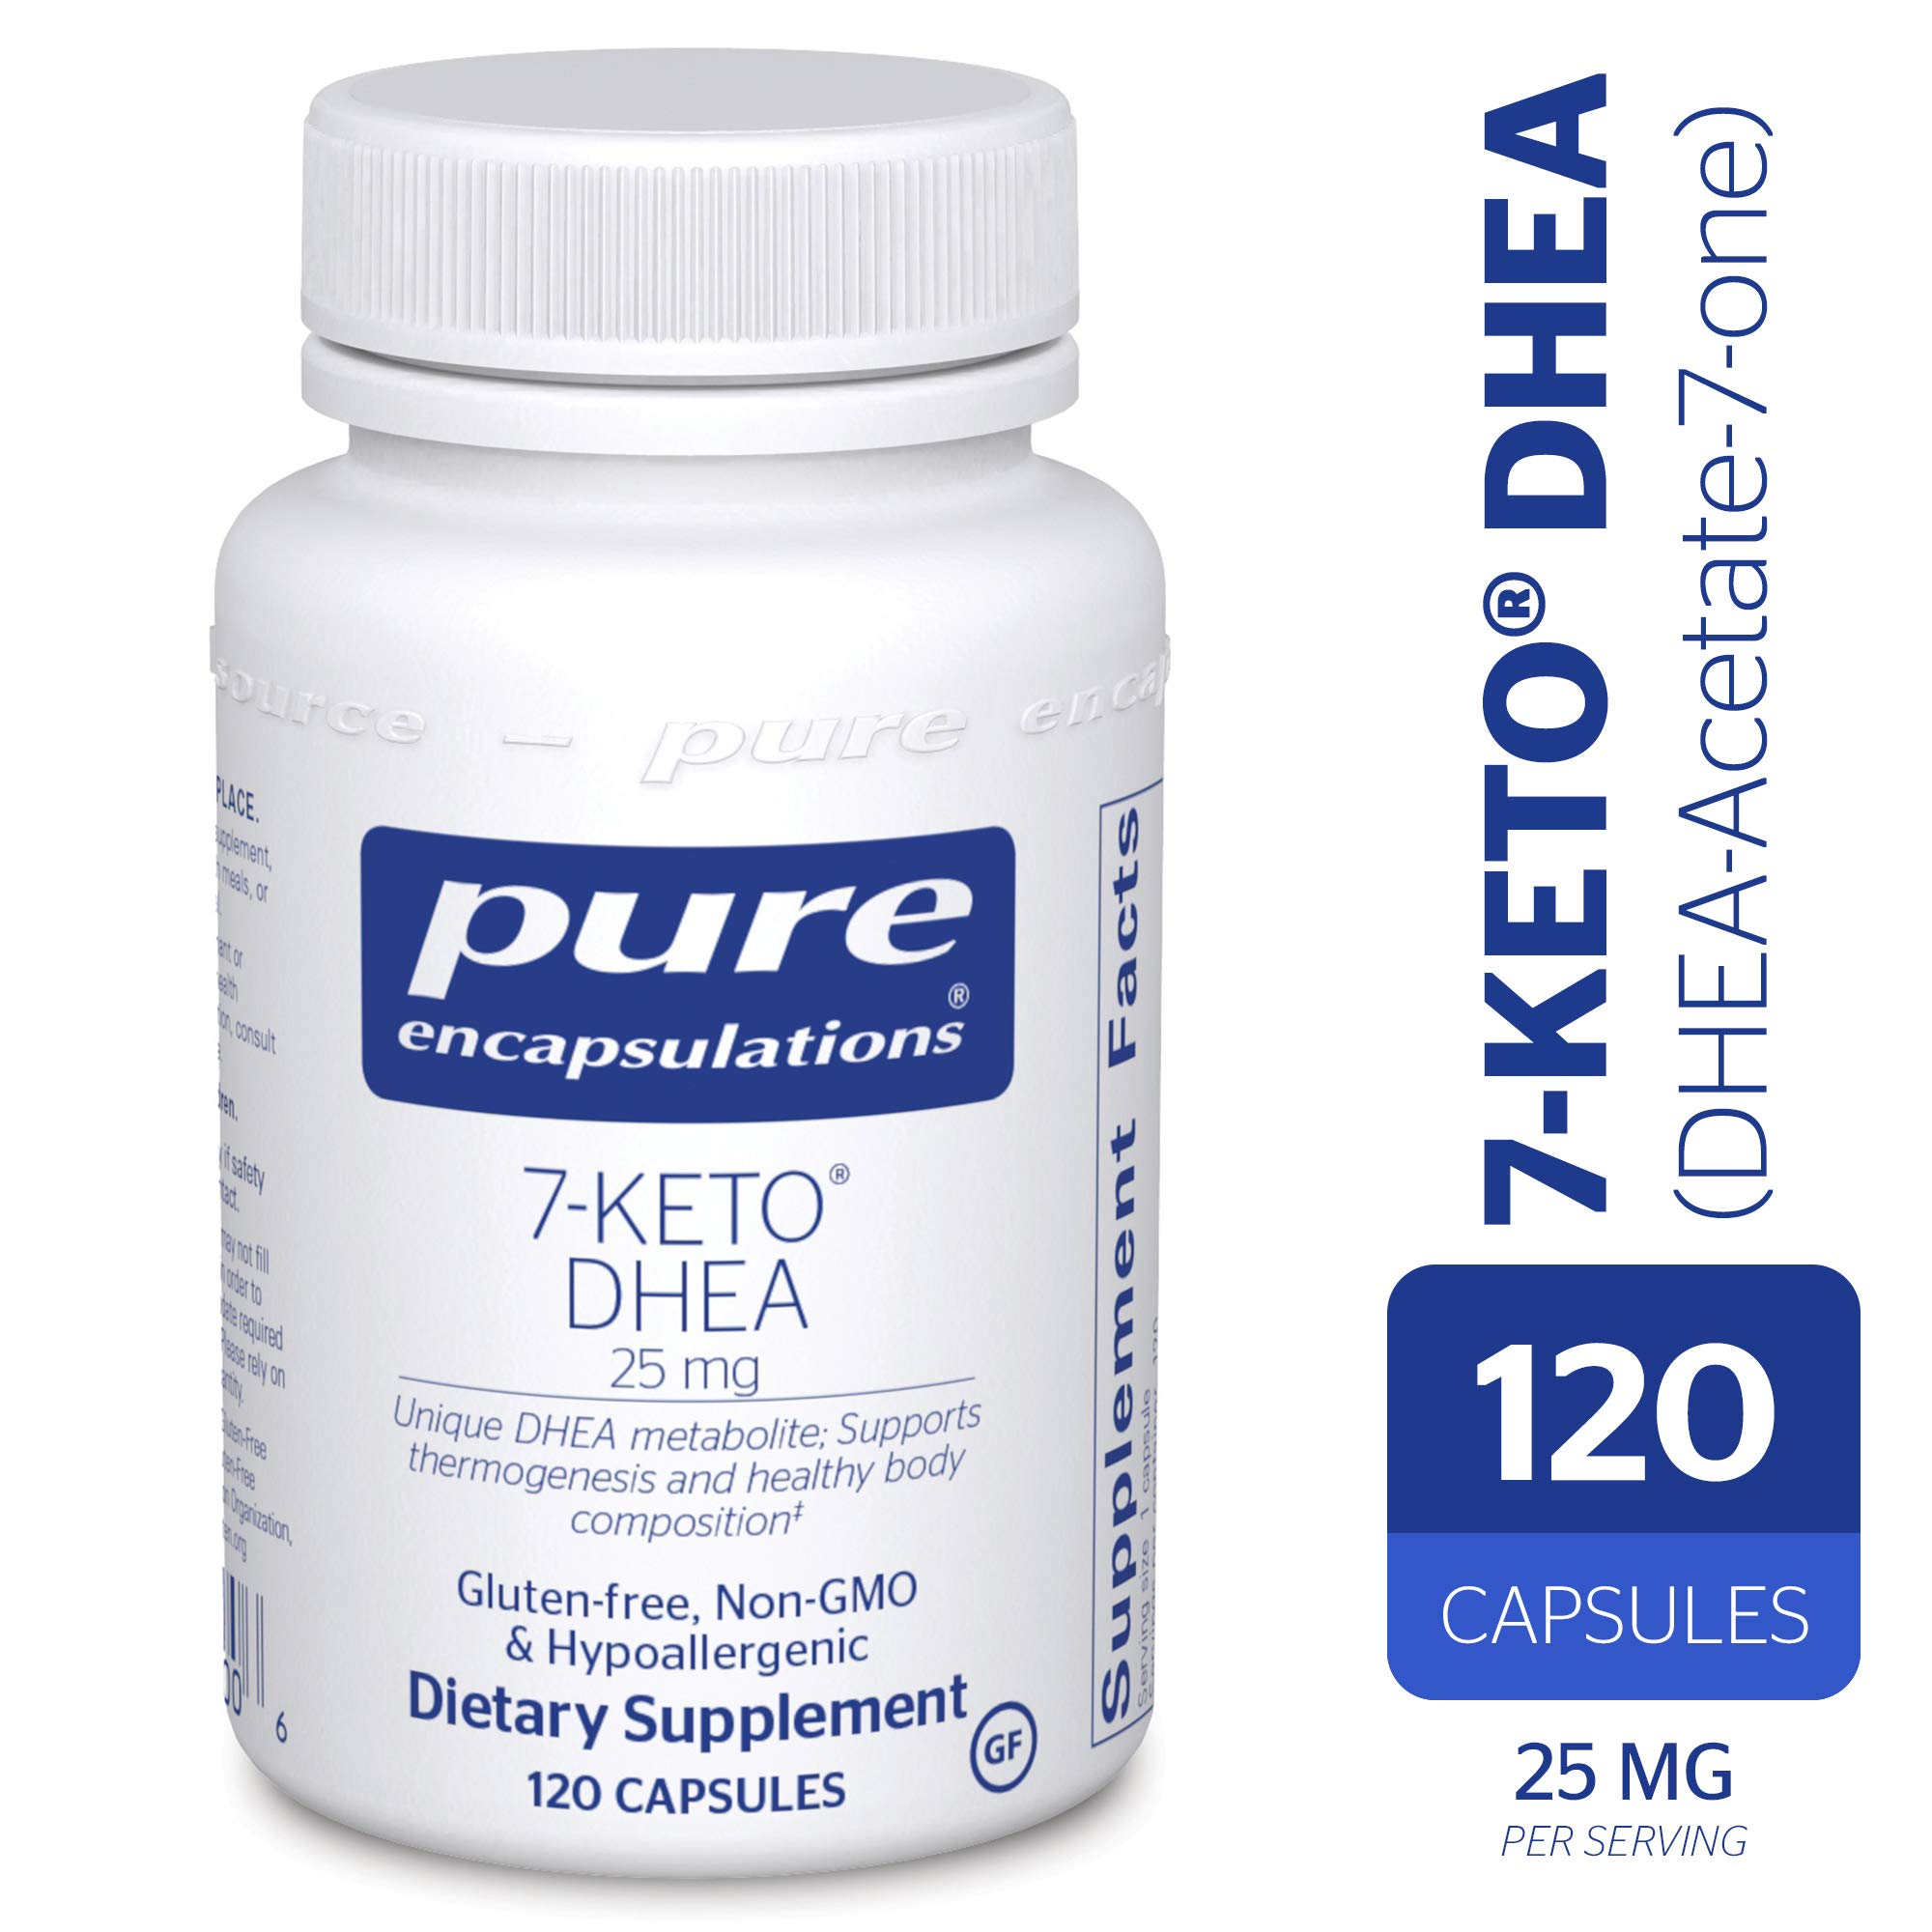 Pure Encapsulations - 7-Keto DHEA (DHEA-Acetate-7-one) 25 mg - Unique DHEA Metabolite - Hypoallergenic Dietary Supplement - 120 Capsules